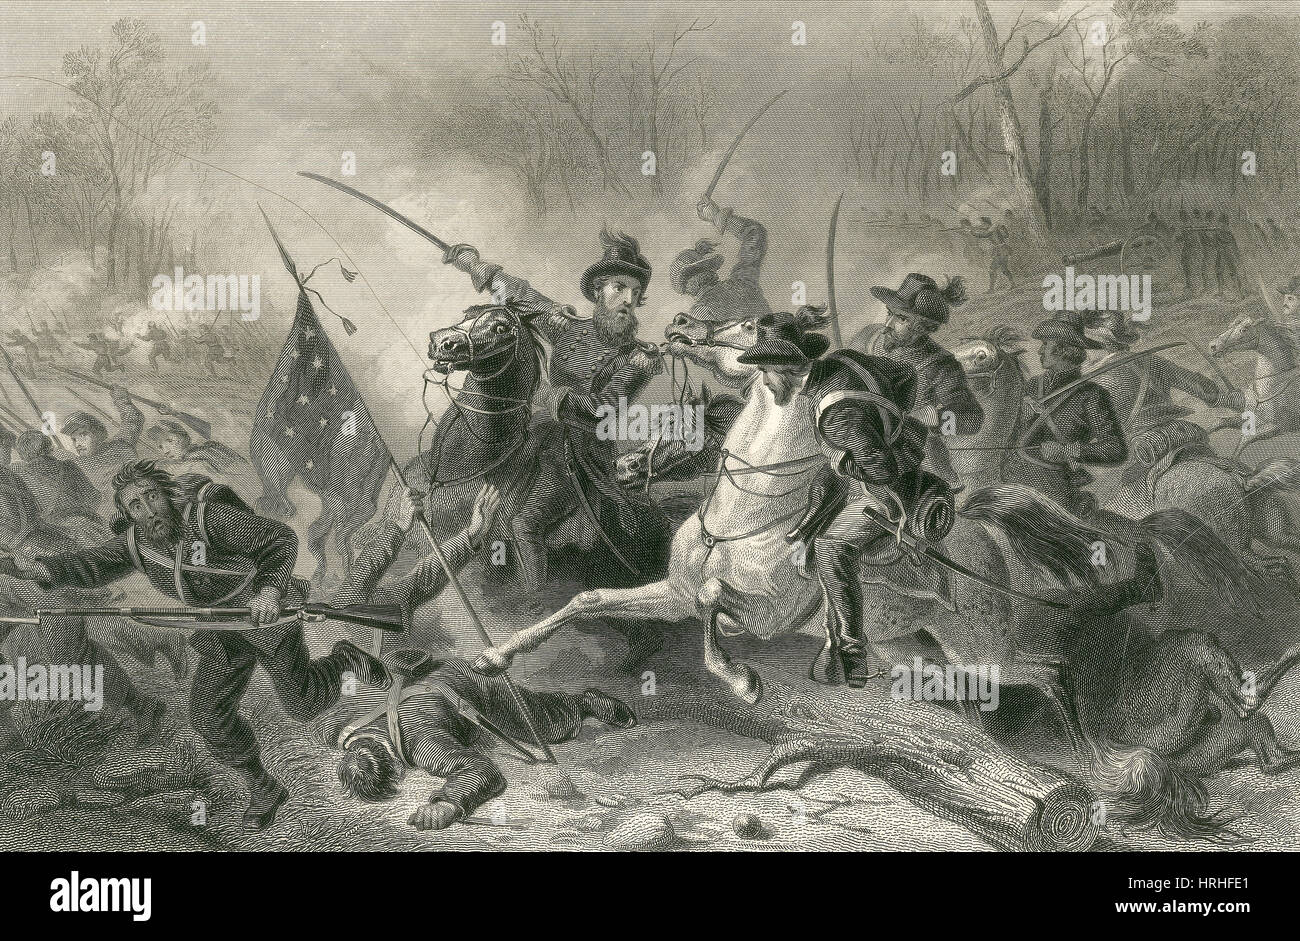 Battle of Shiloh, Charge of General Grant, 1862 - Stock Image